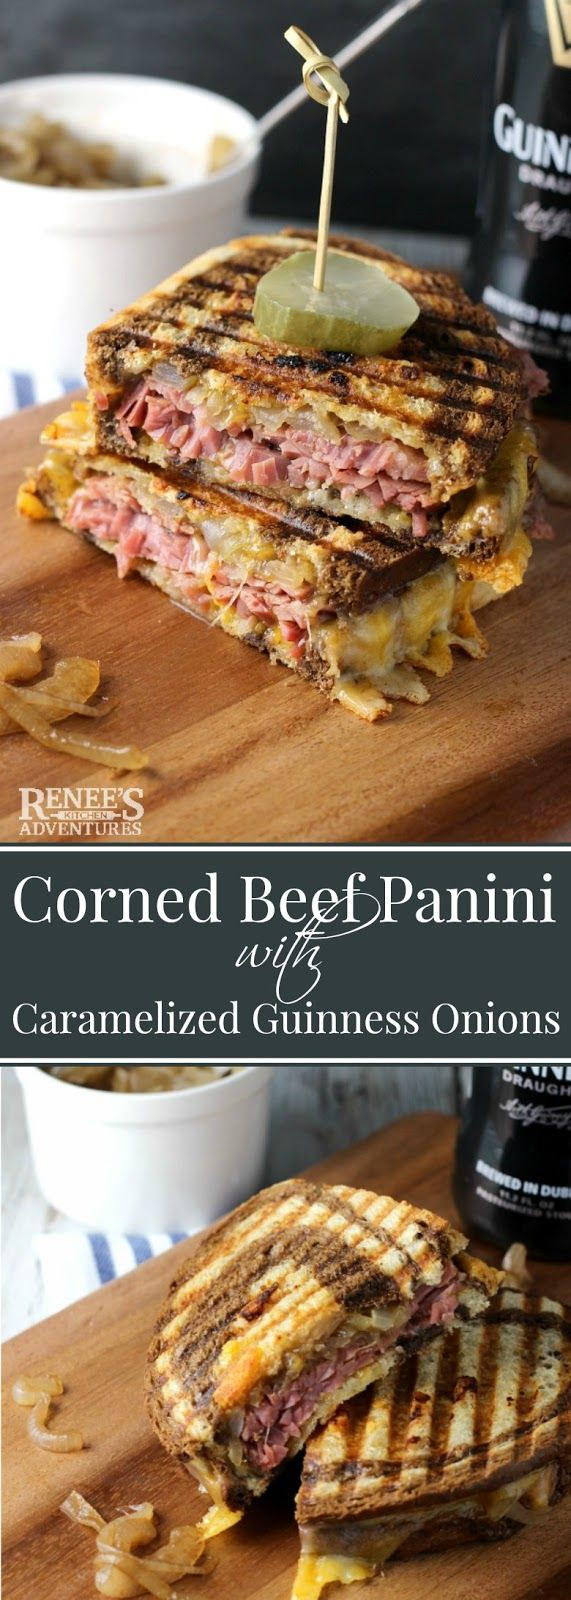 Corned Beef Panini with Caramelized Guinness Onions | Renee's Kitchen Adventures - easy recipe for corned beef sandwiches with Guinness infused onions, cheddar cheese, on marble rye bread. Makes a great lunch or dinner and a good way to use up leftover corned beef. #BestBeef